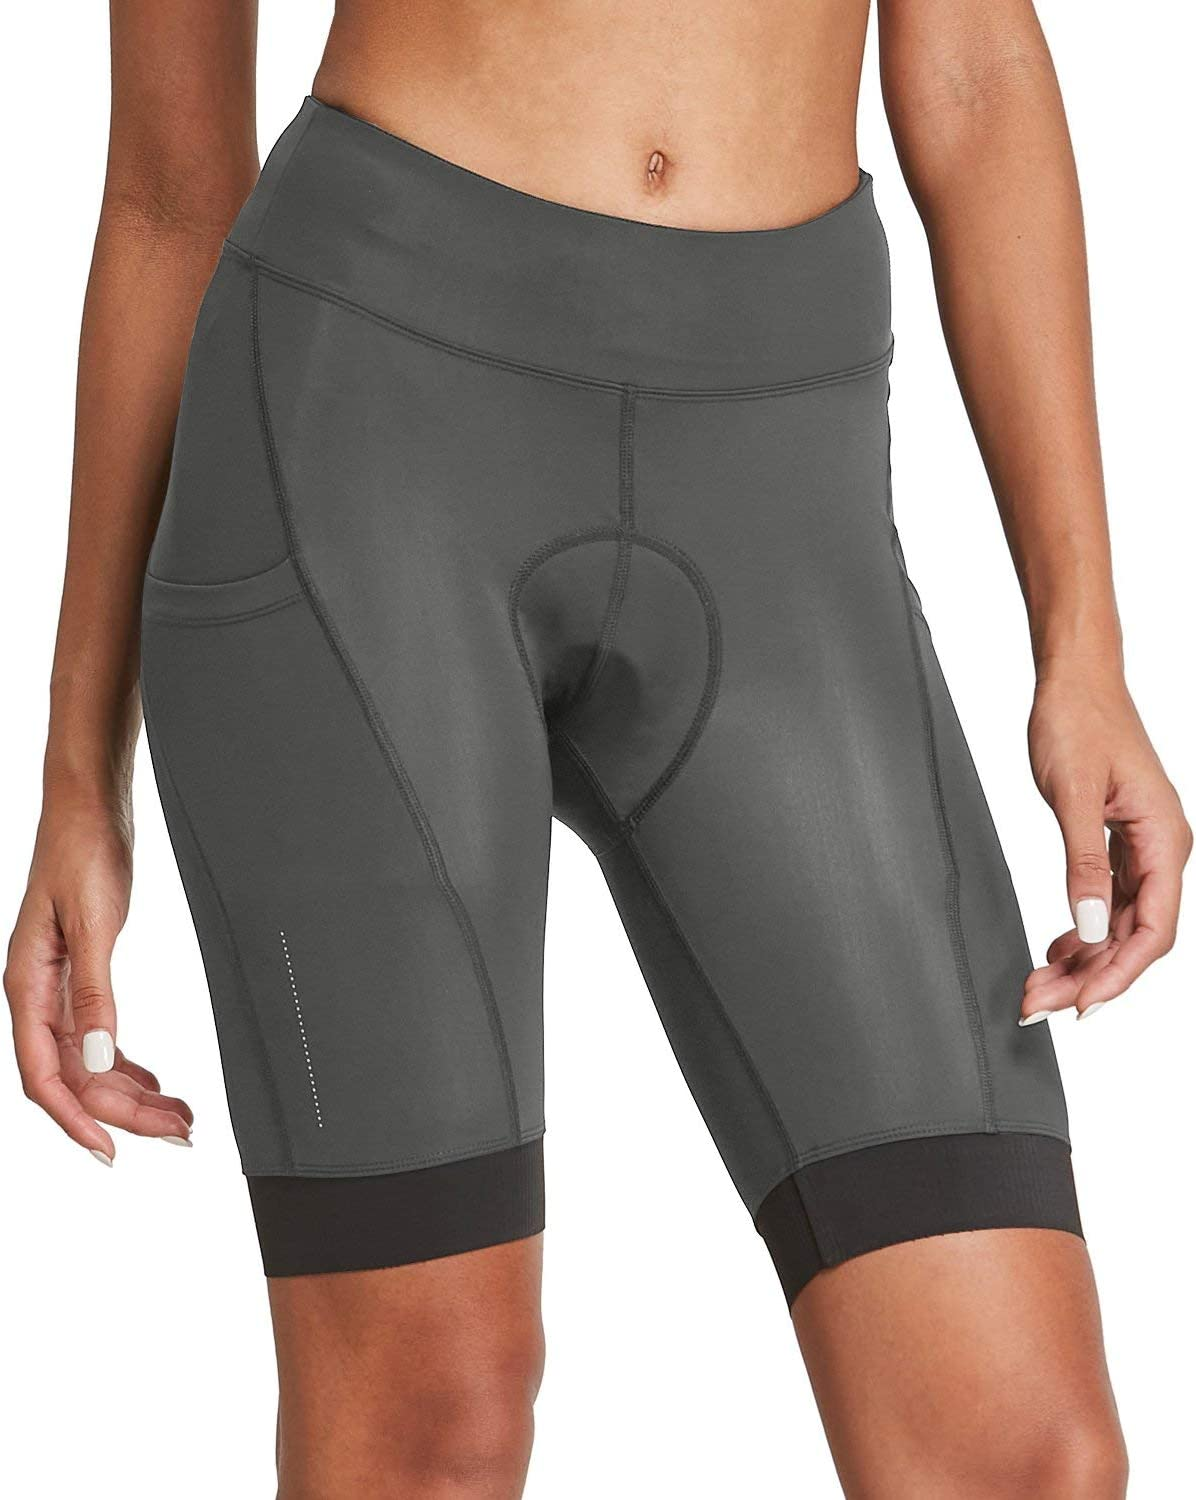 Willit Womens Bike Shorts 3D Padded Cycling Bicycle Shorts Pockets Quick Dry Lightweight Pockets 8